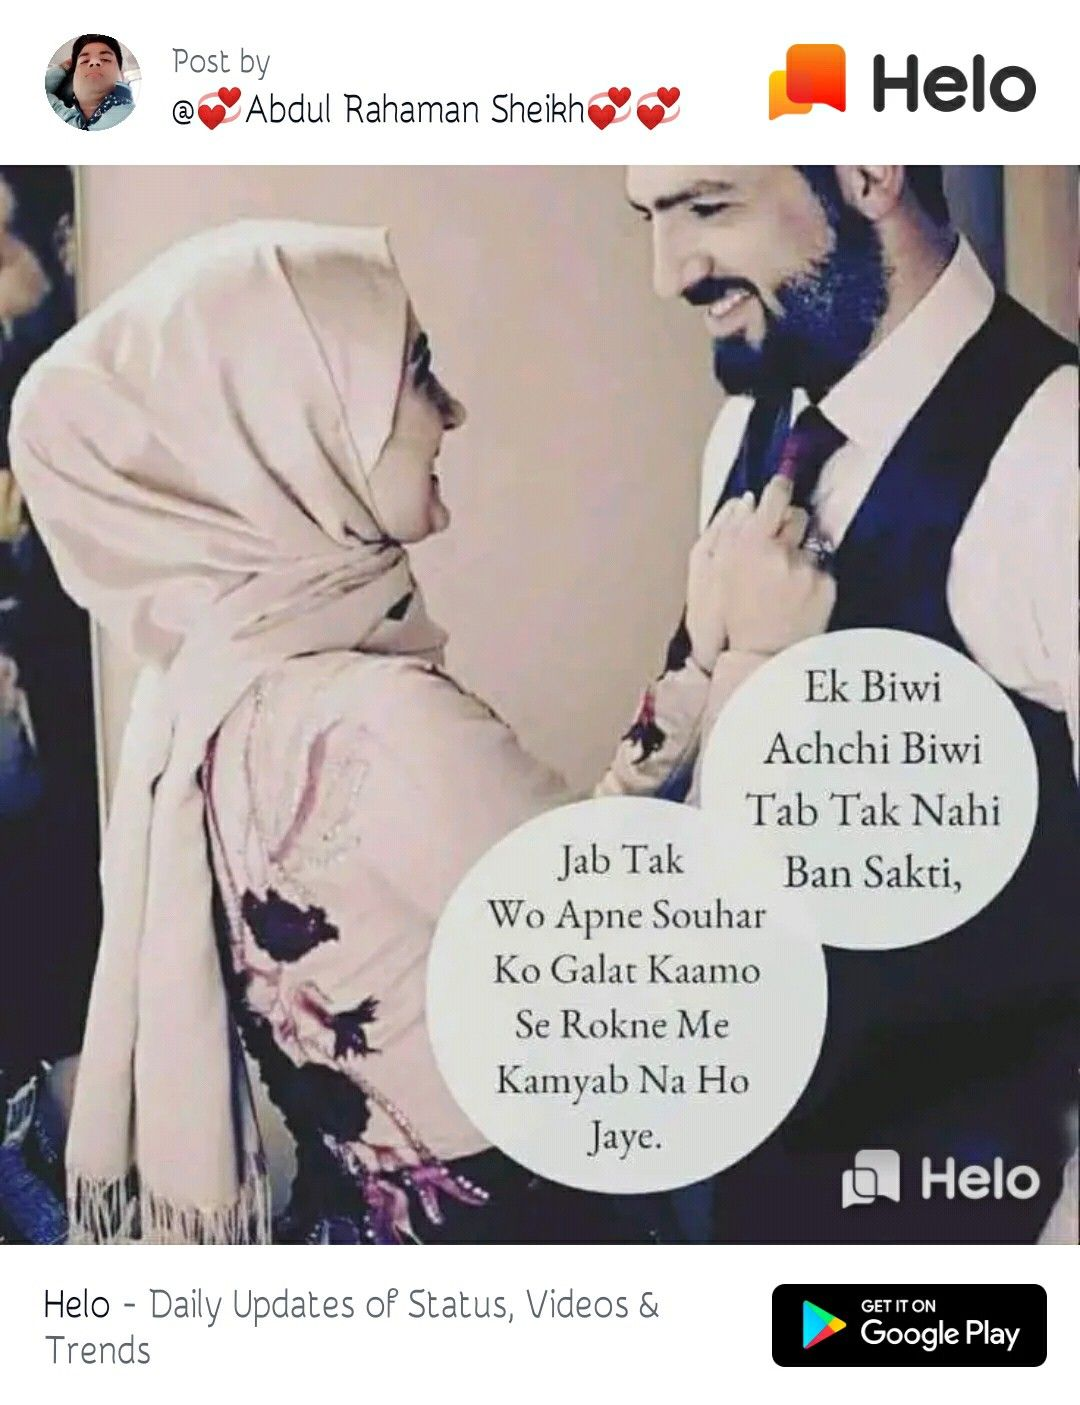 Pin by S👑 on Halaal Memes, Ecard meme, How to get